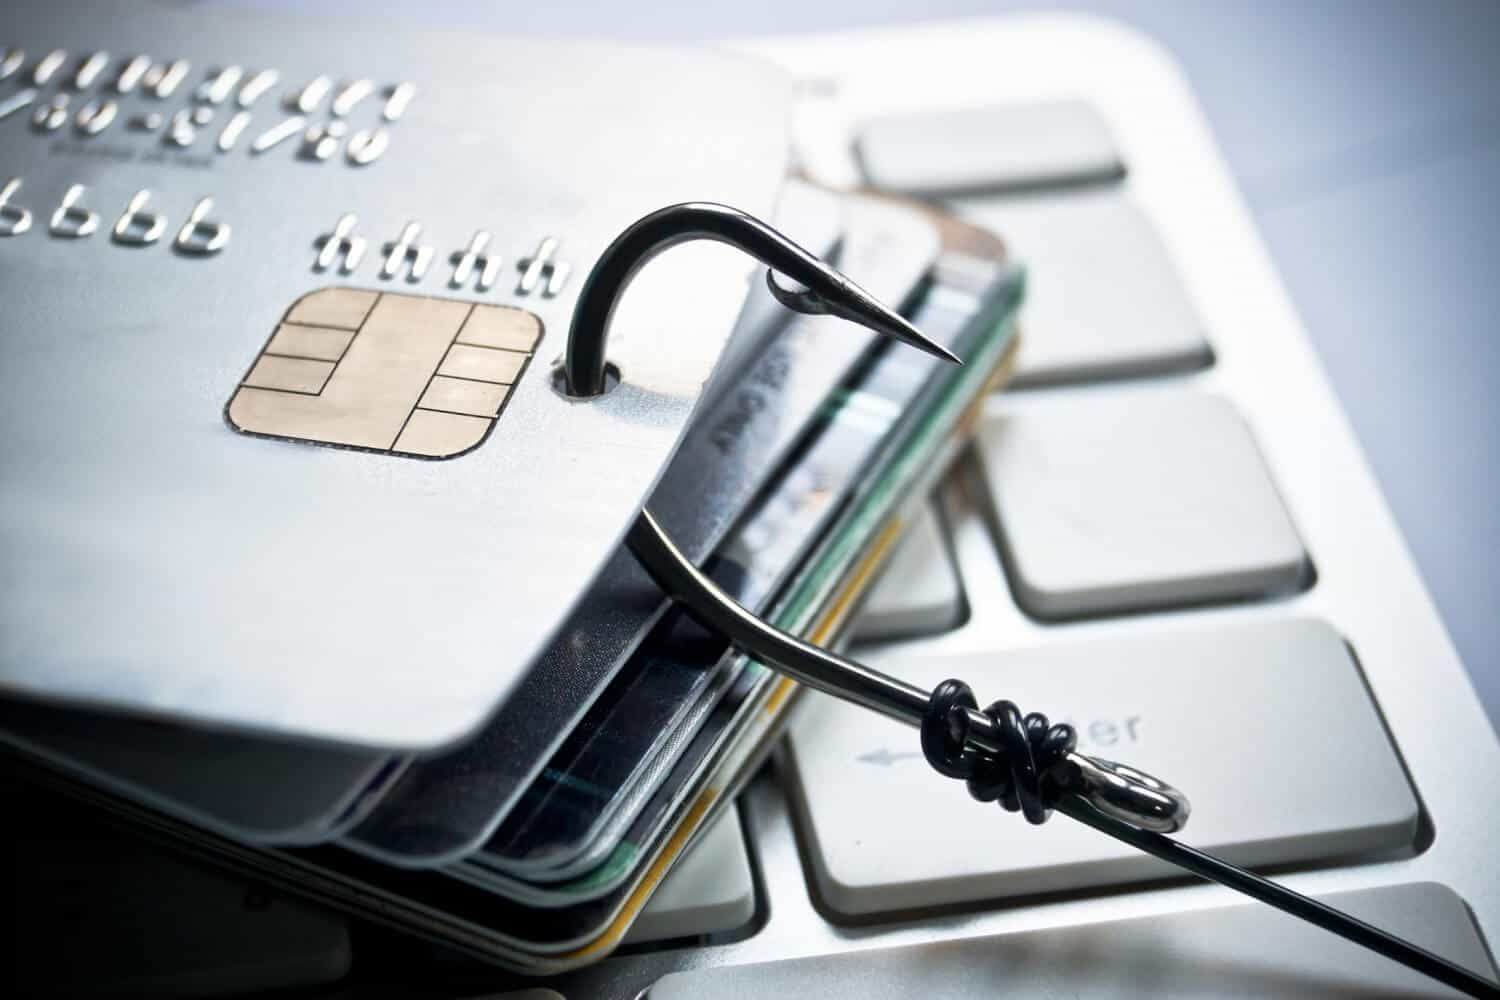 Credit cards with hooks through them represents phishing, something IT departments must learn to be wary of